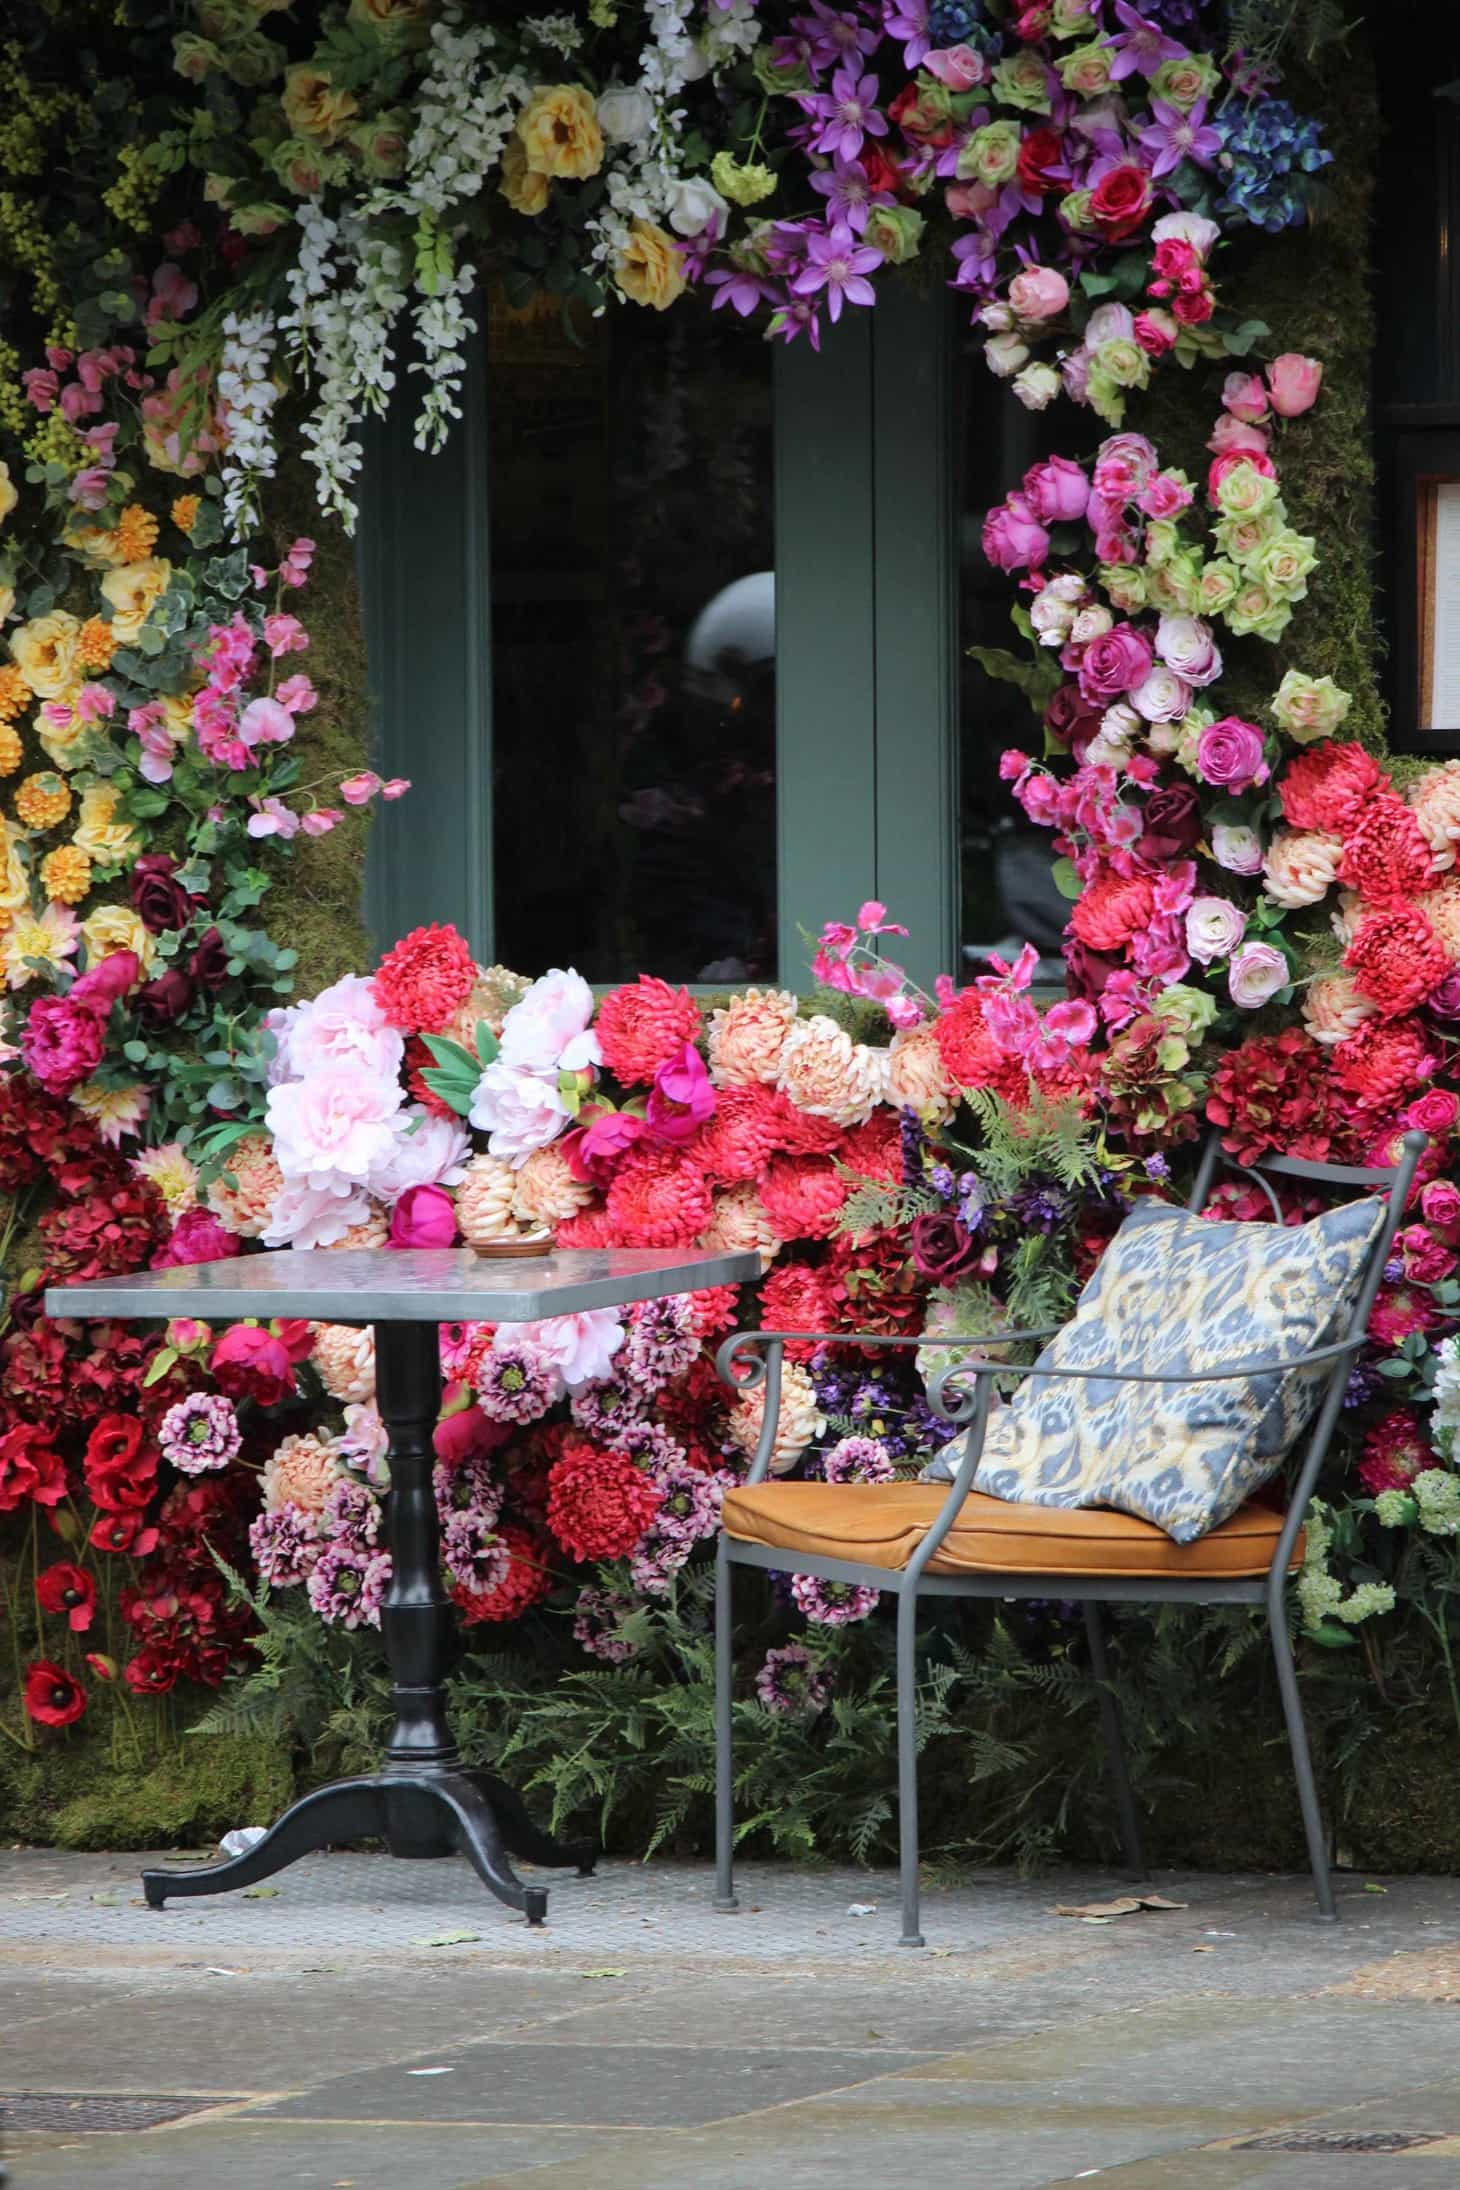 most instagrammable places across the London during the Chelsea flower show, chelsea in bloom, belgravia in bloom, RHS, 2016, The Ivy Chelsea Garden